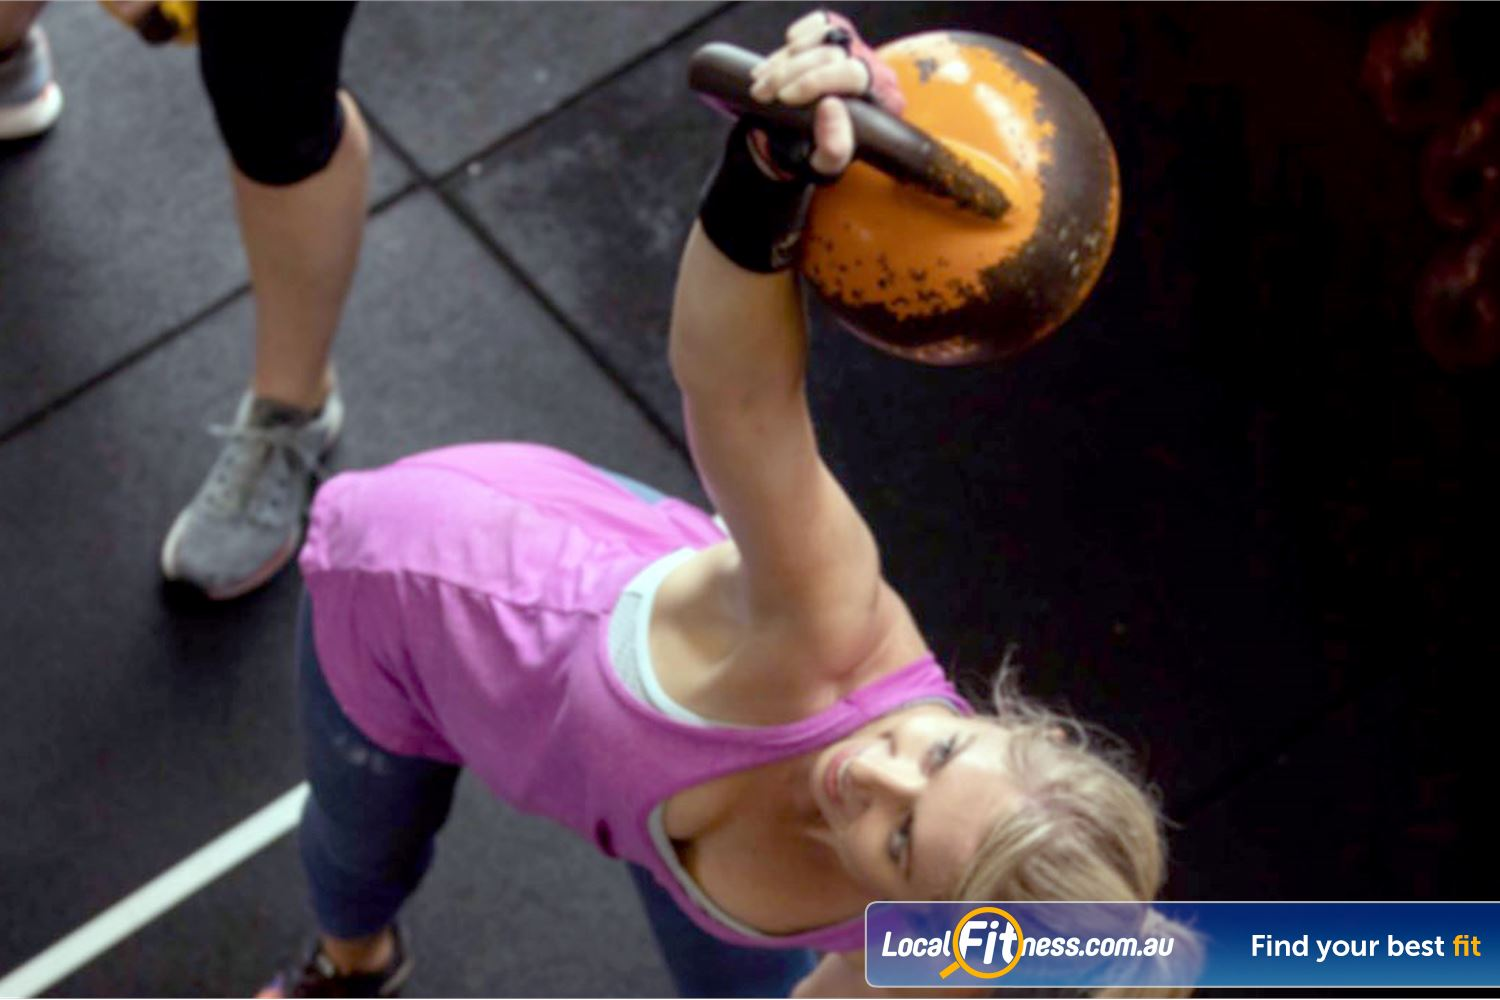 KettleFit Ascot Vale Near North Melbourne Kettlebell Windmills are a great way to work your core and entire body.